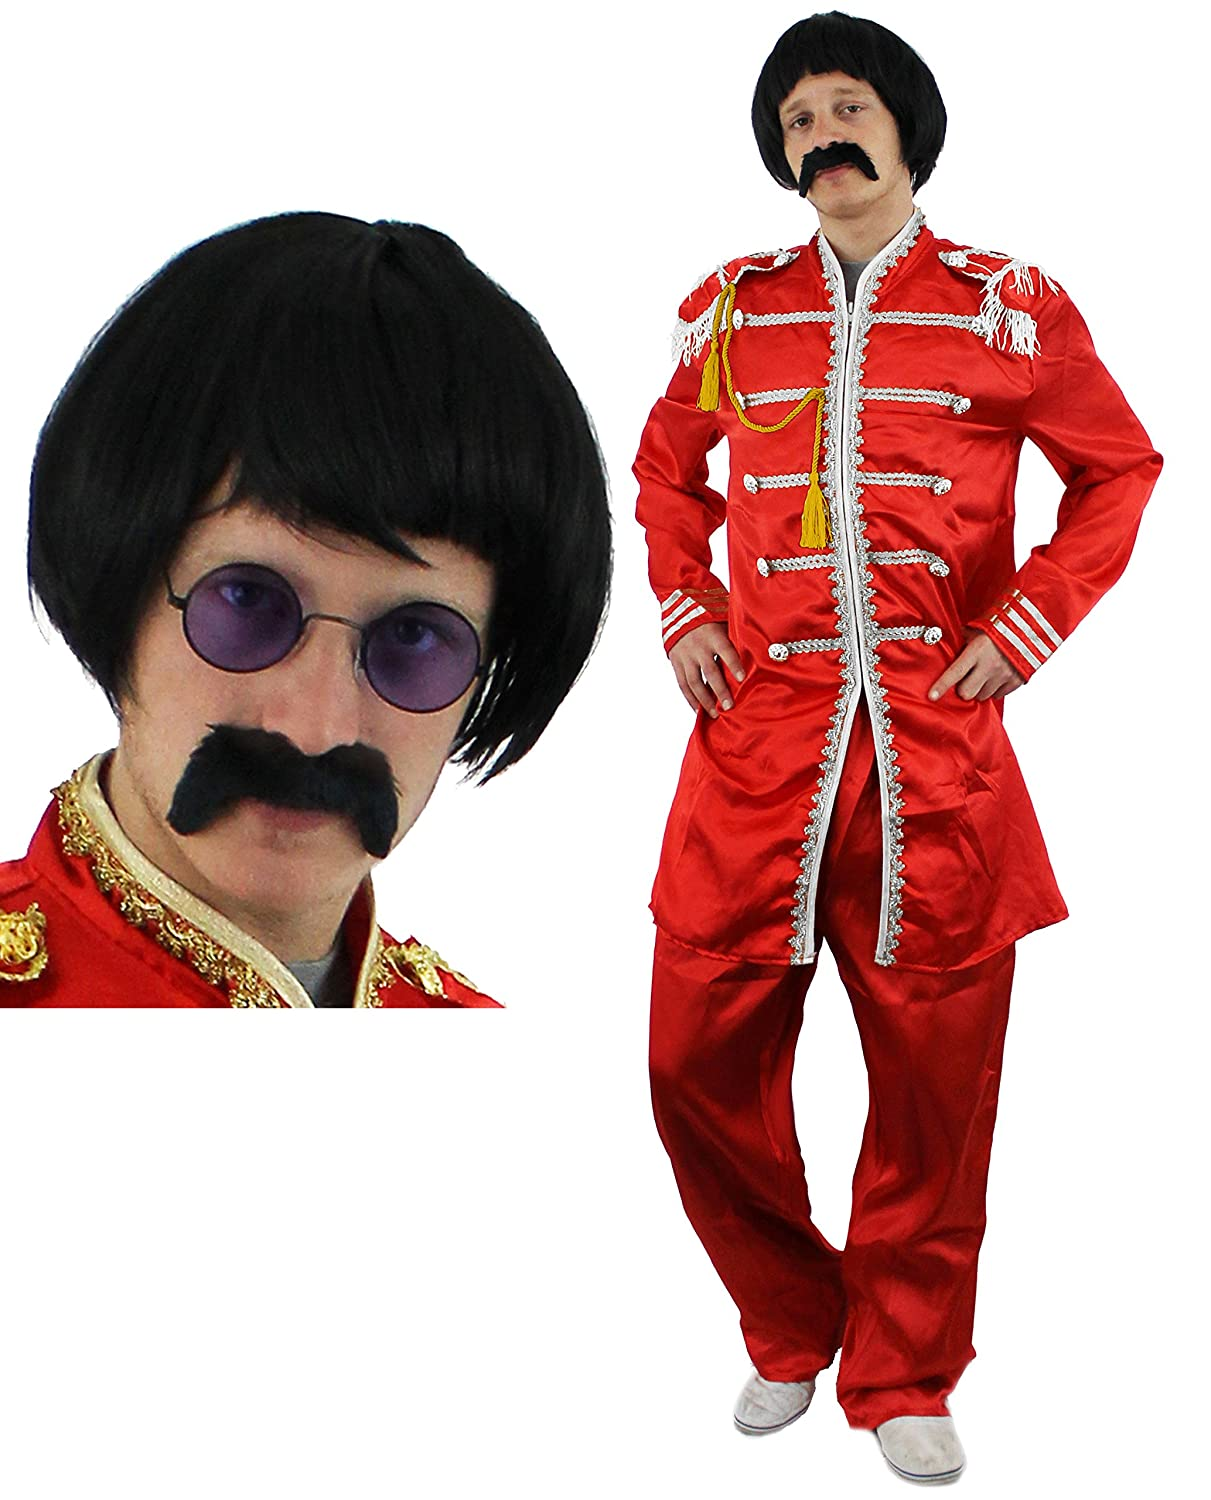 60'S POP SOLDIER FANCY DRESS COSTUME WITH BLACK WIG, TASH AND CIRCLE GLASSES. SUIT IN RED, PINK, BLUE OR GREEN SERGEANT PEPPER STYLE SGT PEPPER 1960S HIPPY IN SMALL - XLARGE EXCLUSIVE TO ILOVEFANCYDRESS